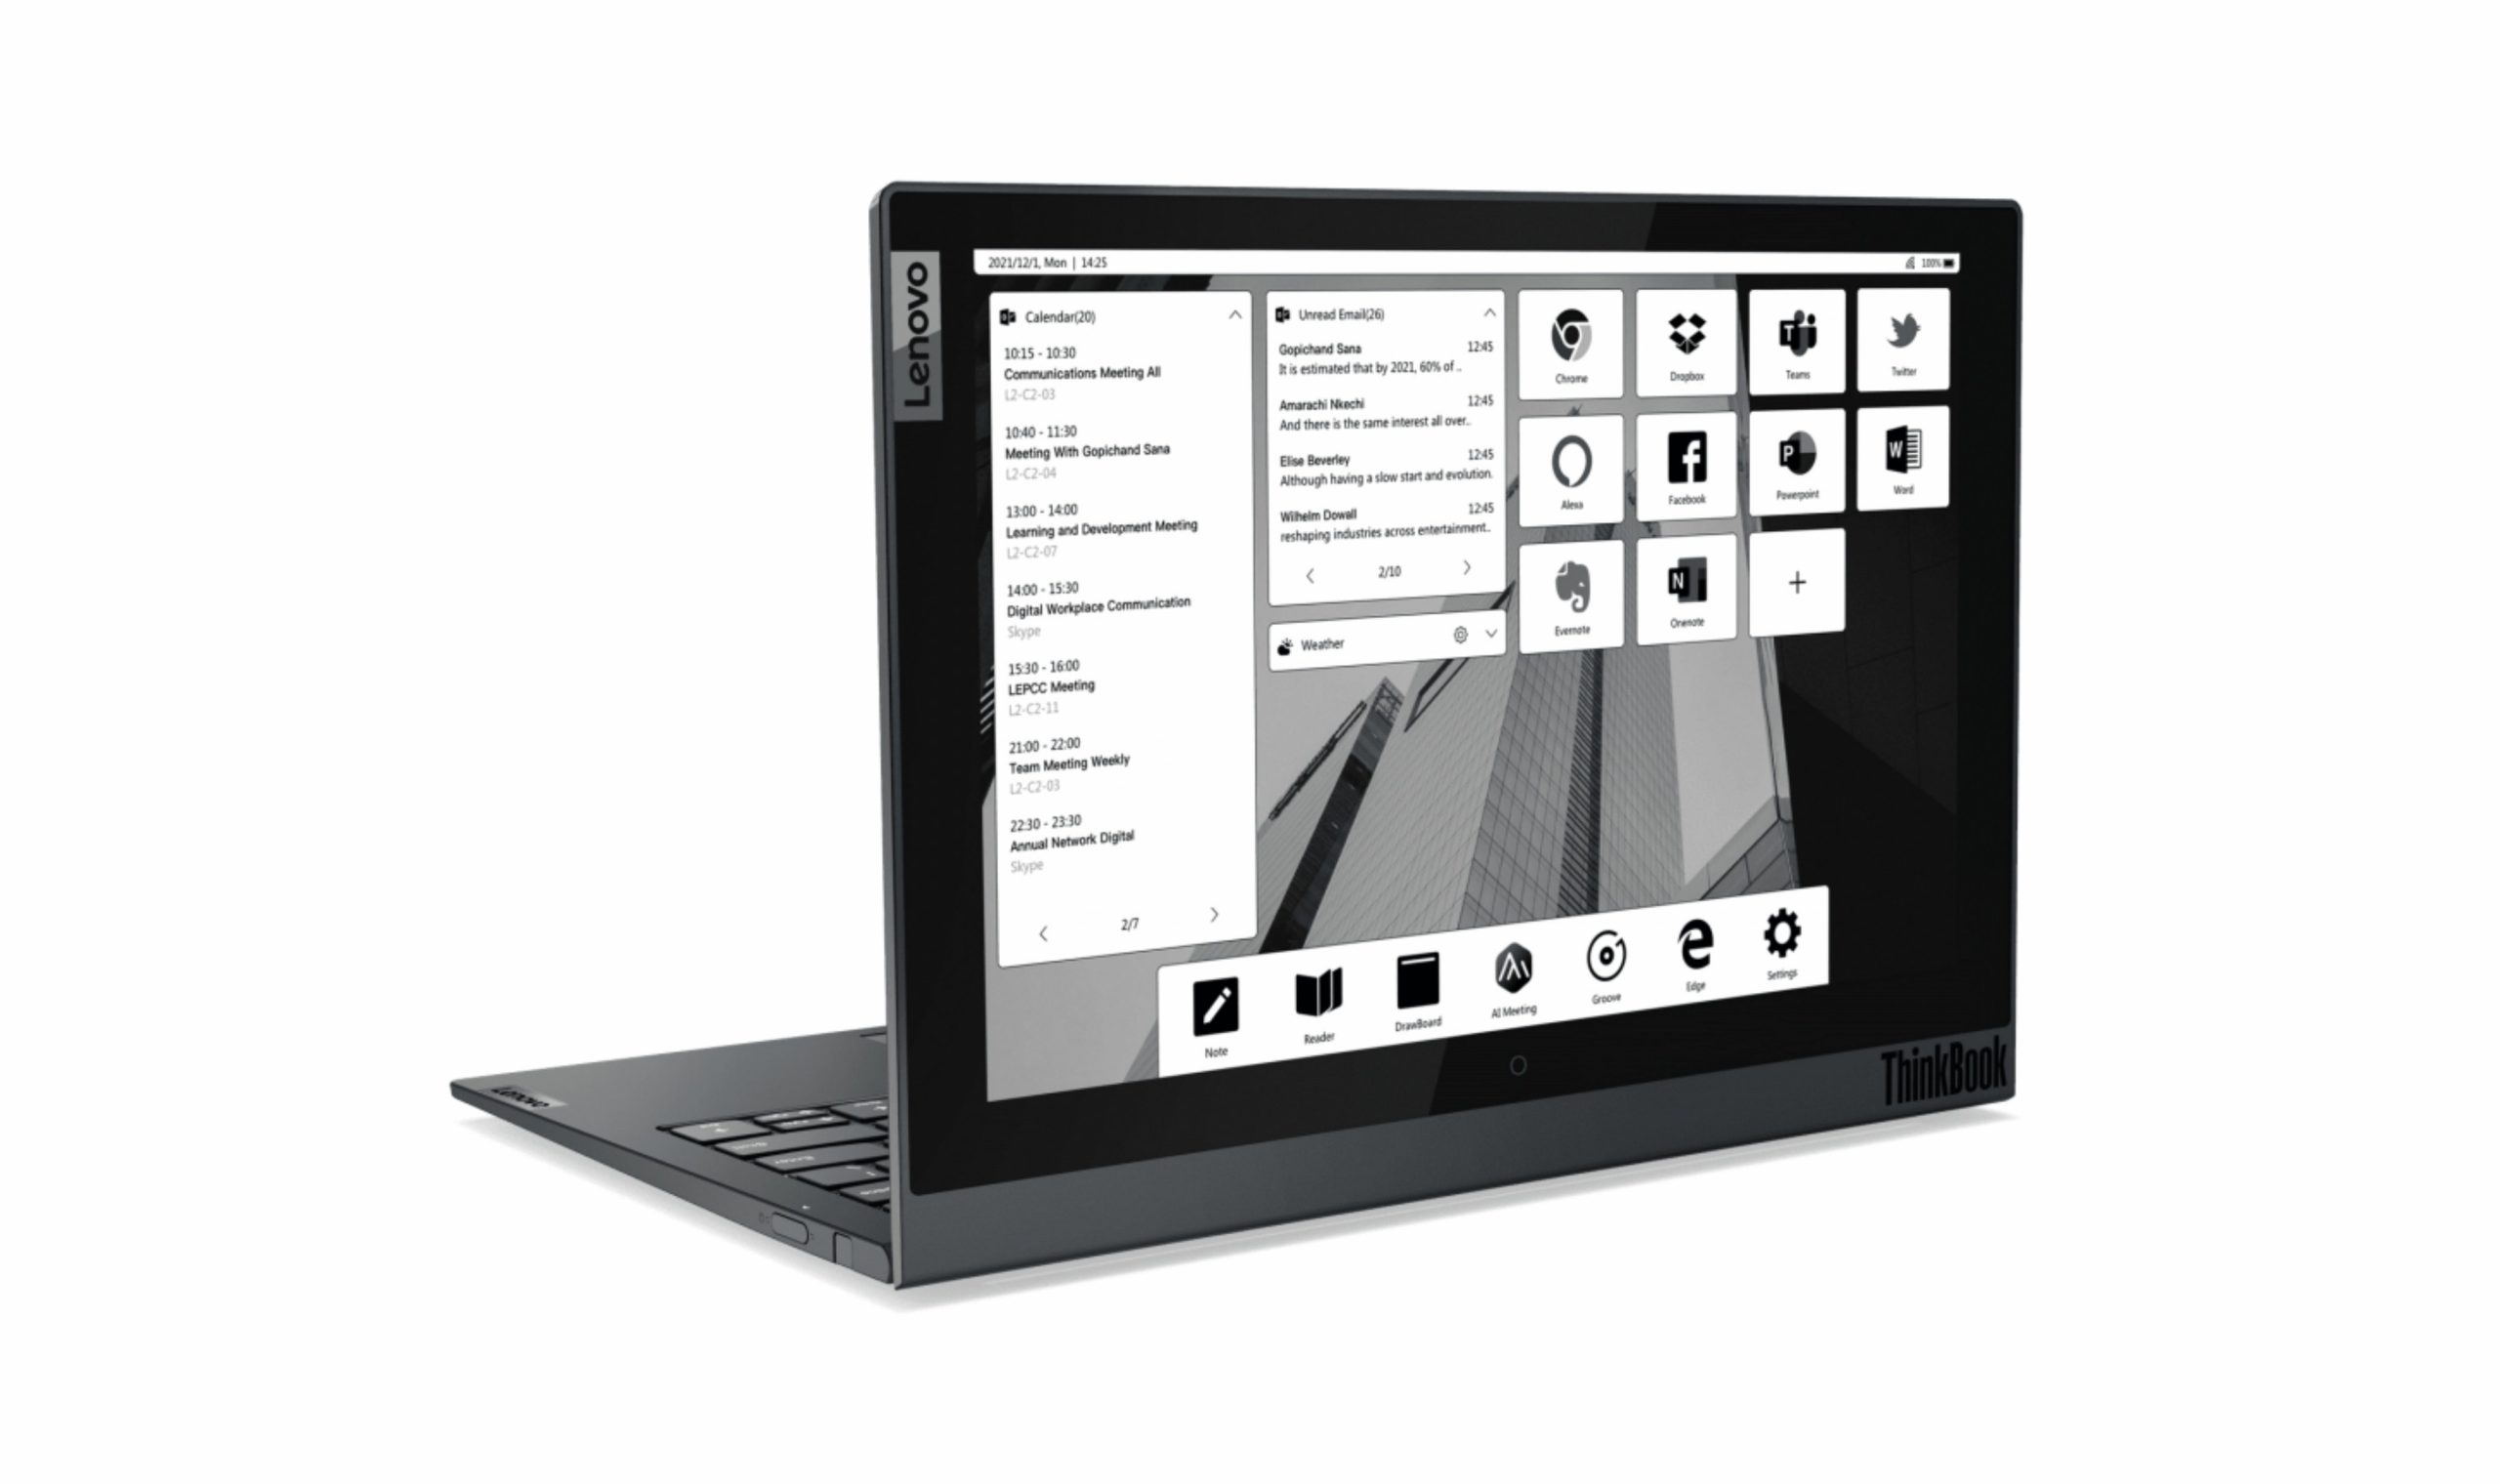 Lenovo ThinkBook Plus Gen 2 announced with a larger e-ink display and 11th Gen Intel Core CPUs